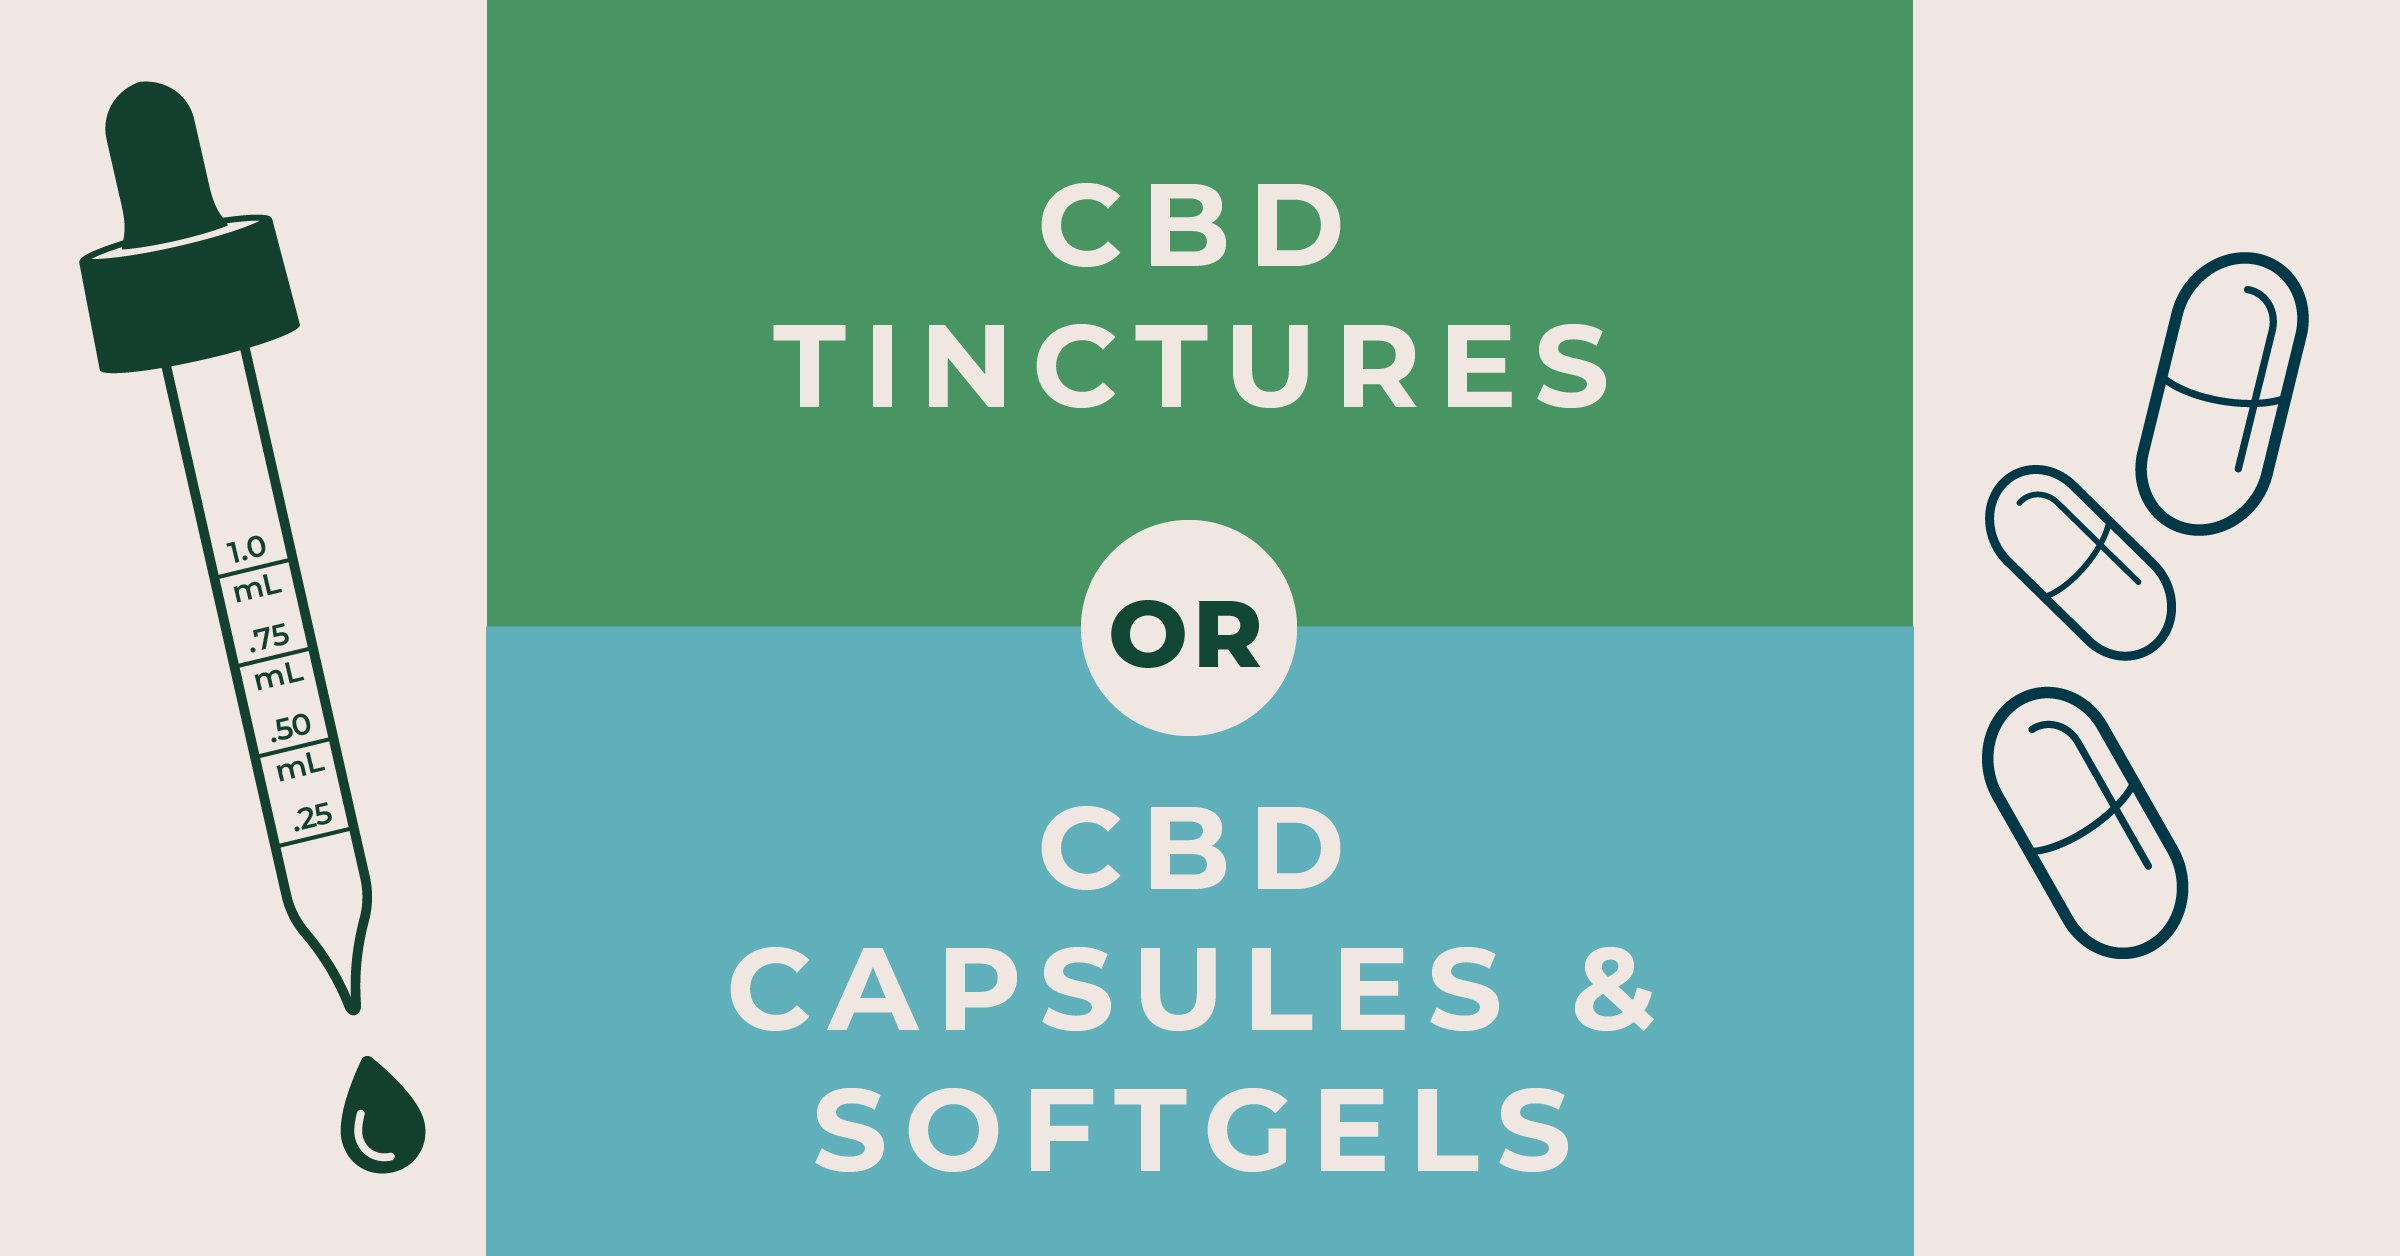 Which is better, CBD tinctures or capsules?